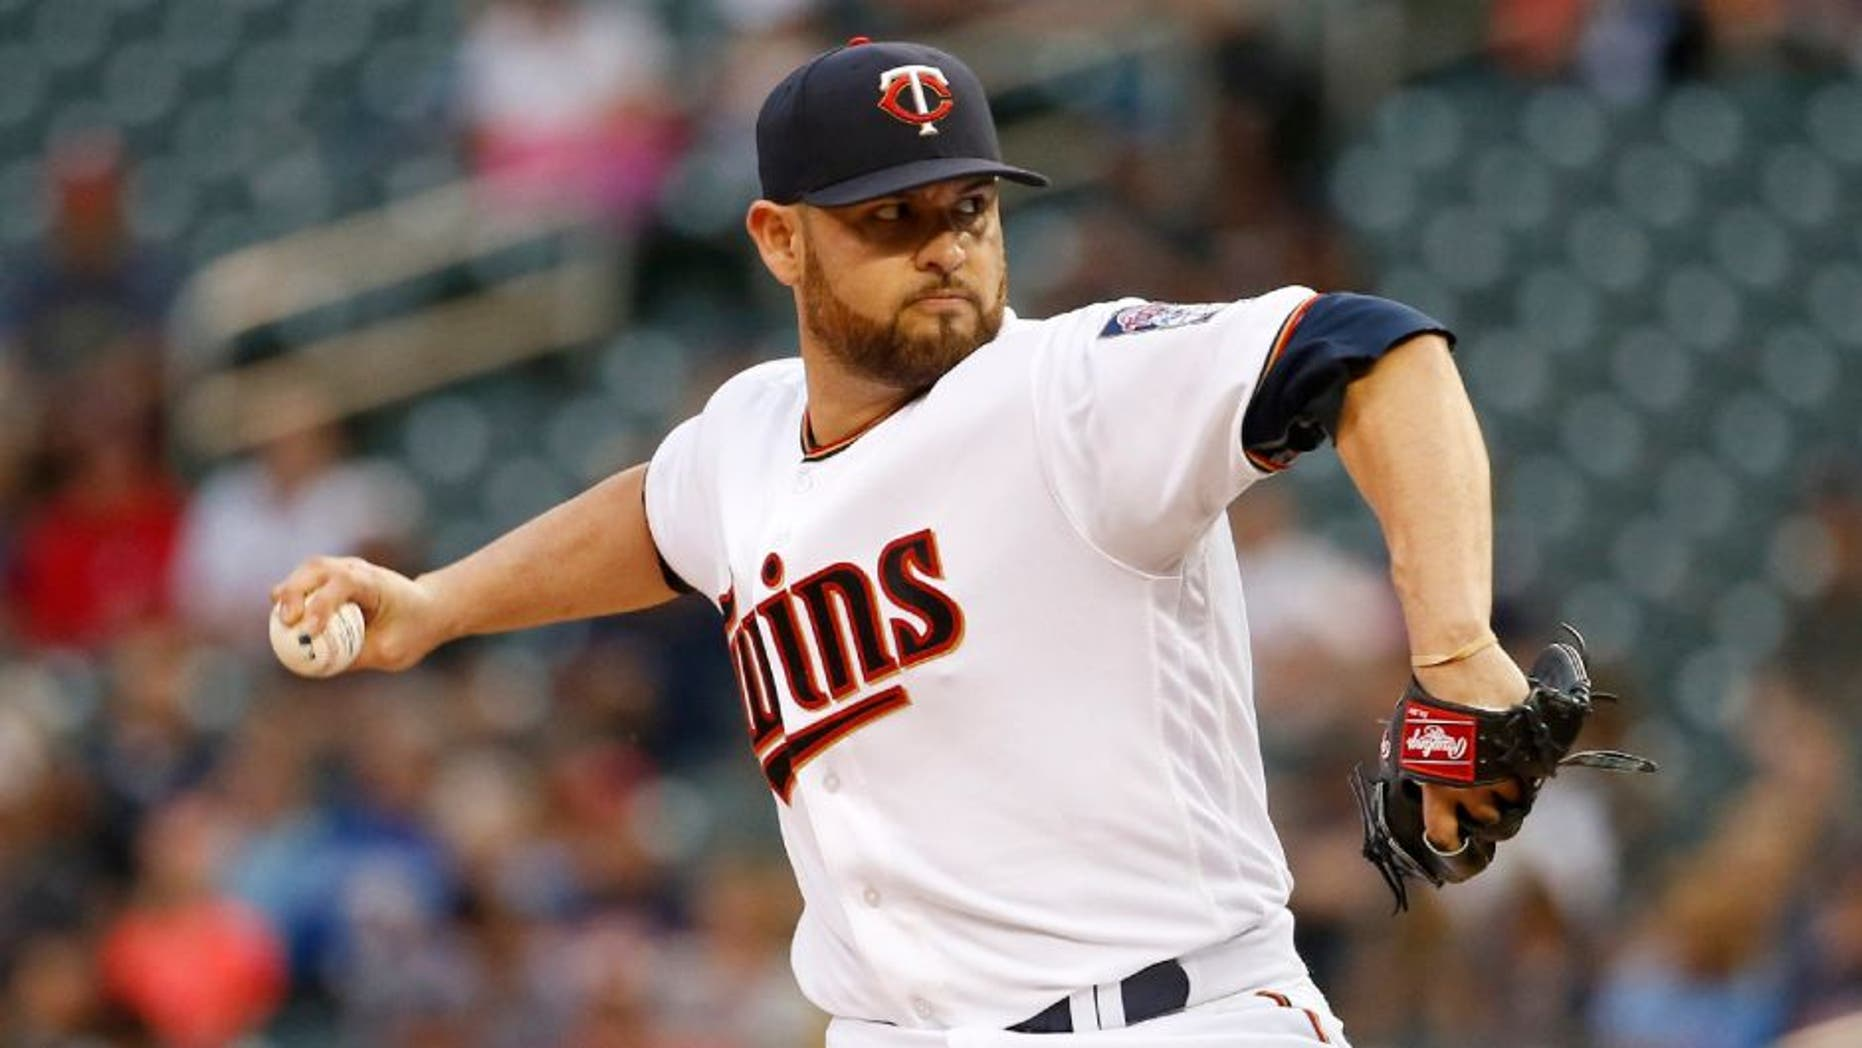 Minnesota Twins starting pitcher Ricky Nolasco delivers to the Kansas City Royals during the first inning.